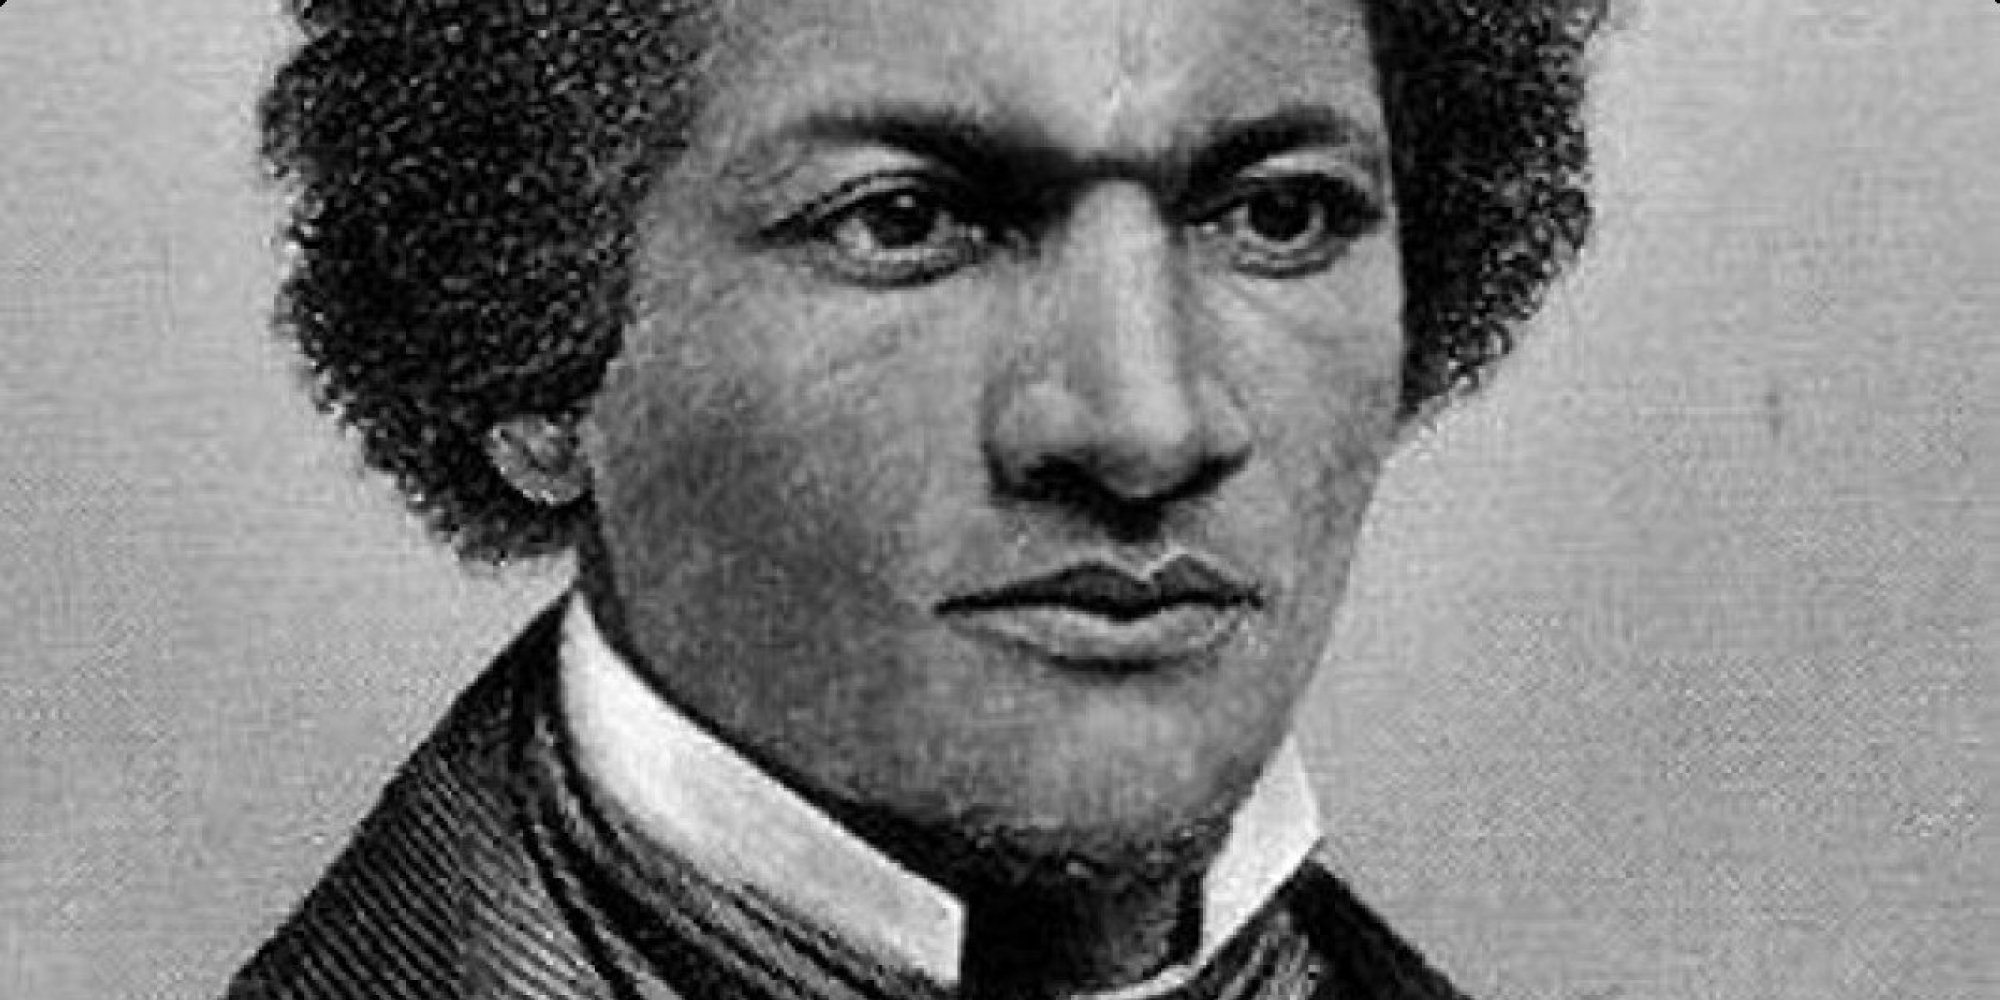 a description of denmark vesey revolt from africa as a slave in a ship Extracts from this document introduction leah aiello demark vesey (1767-1822), whose original name was telemanque, was born in west africa when denmark was young.